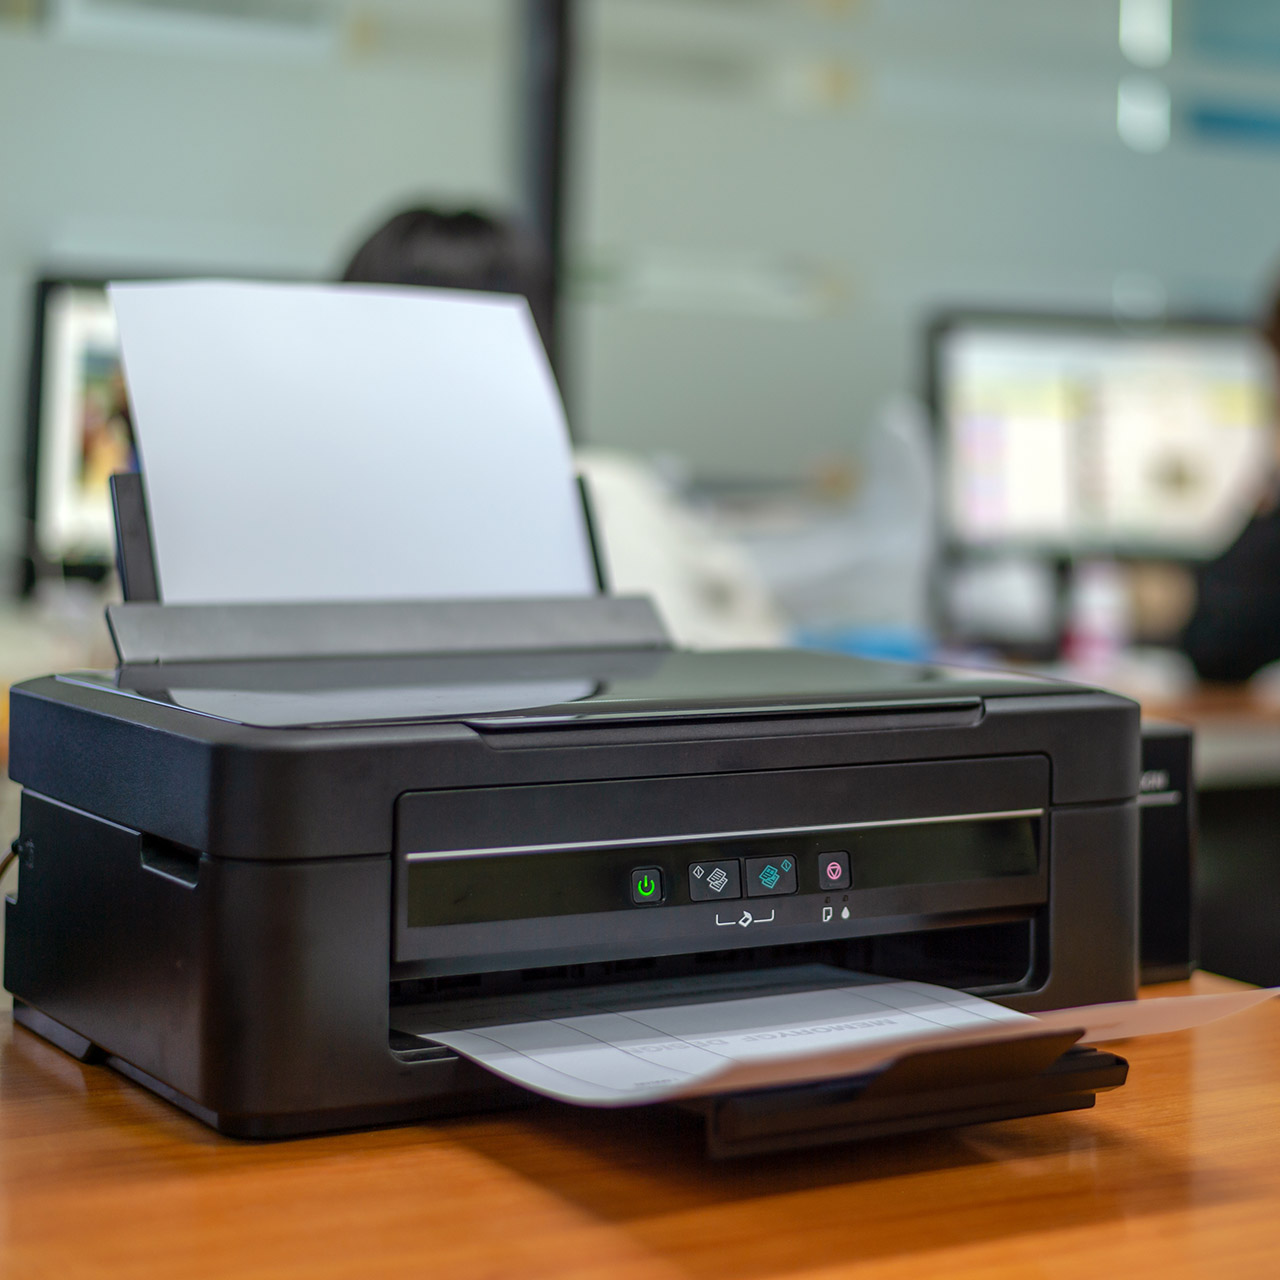 D365 for Finance and Operations embedded printing